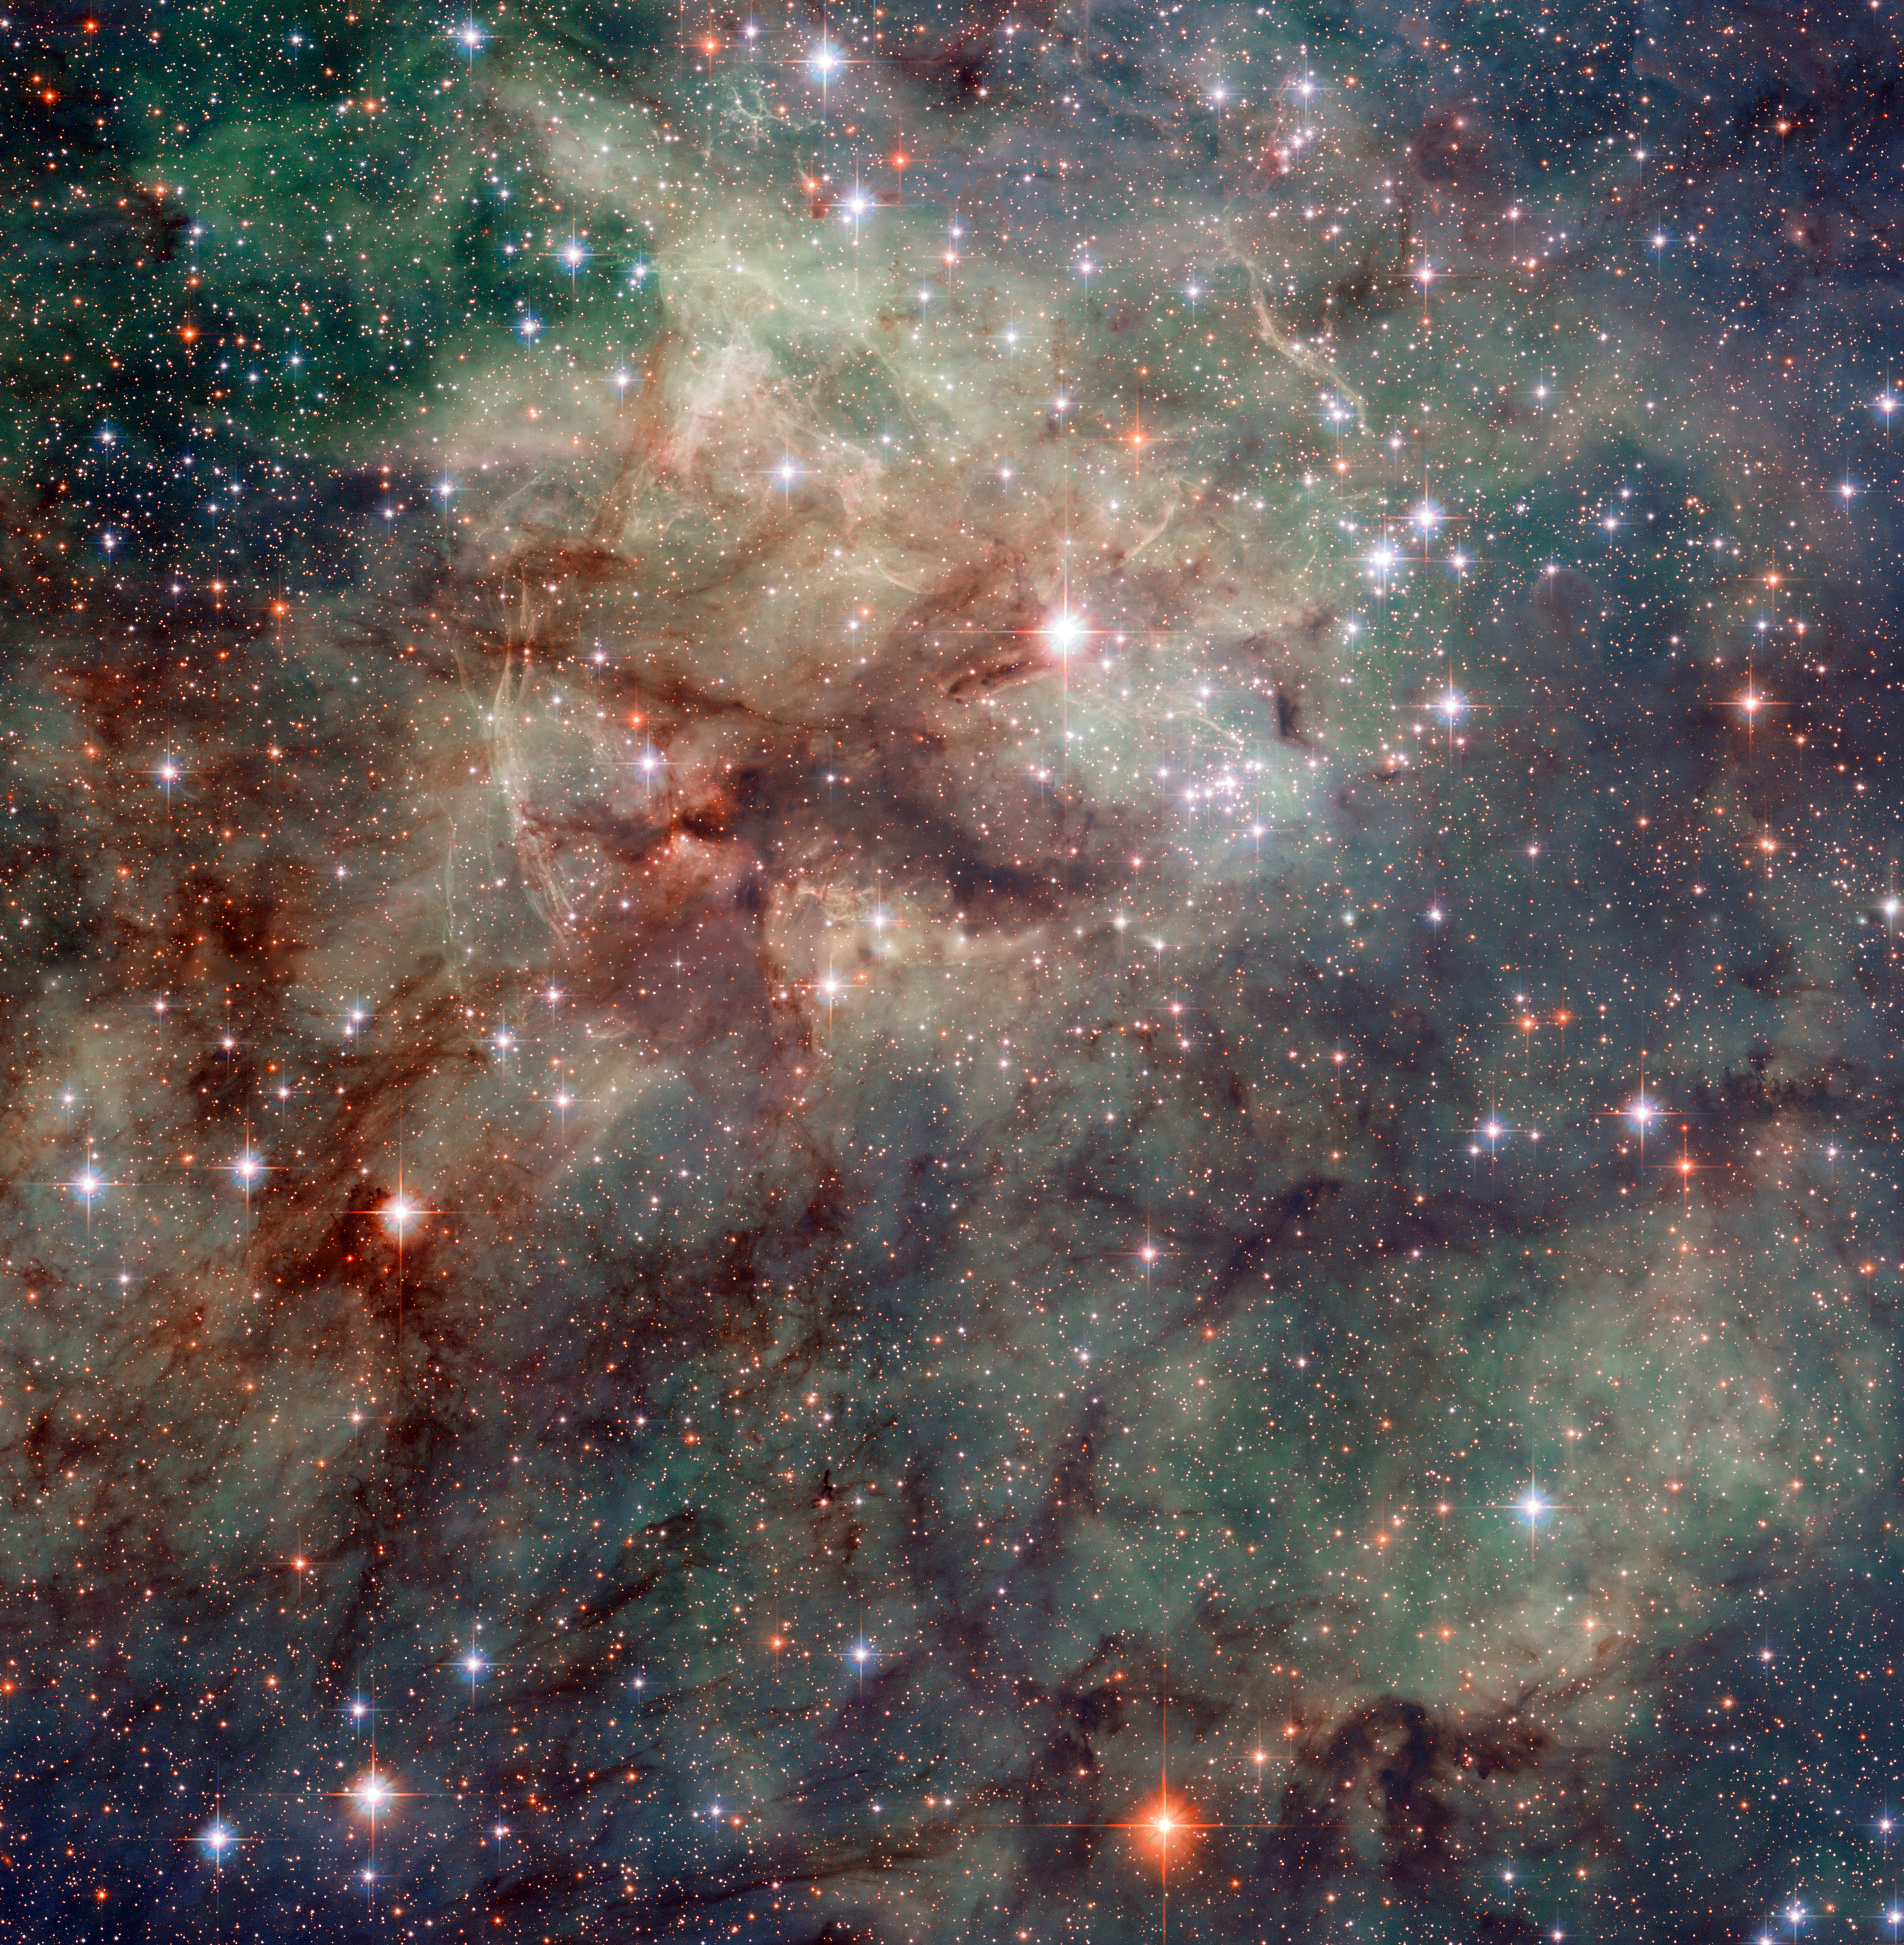 This Hubble Image Shows Part Of The Tarantula Brightest Star Forming Region In Local Universe Nebula Is Found Large Magellanic Cloud